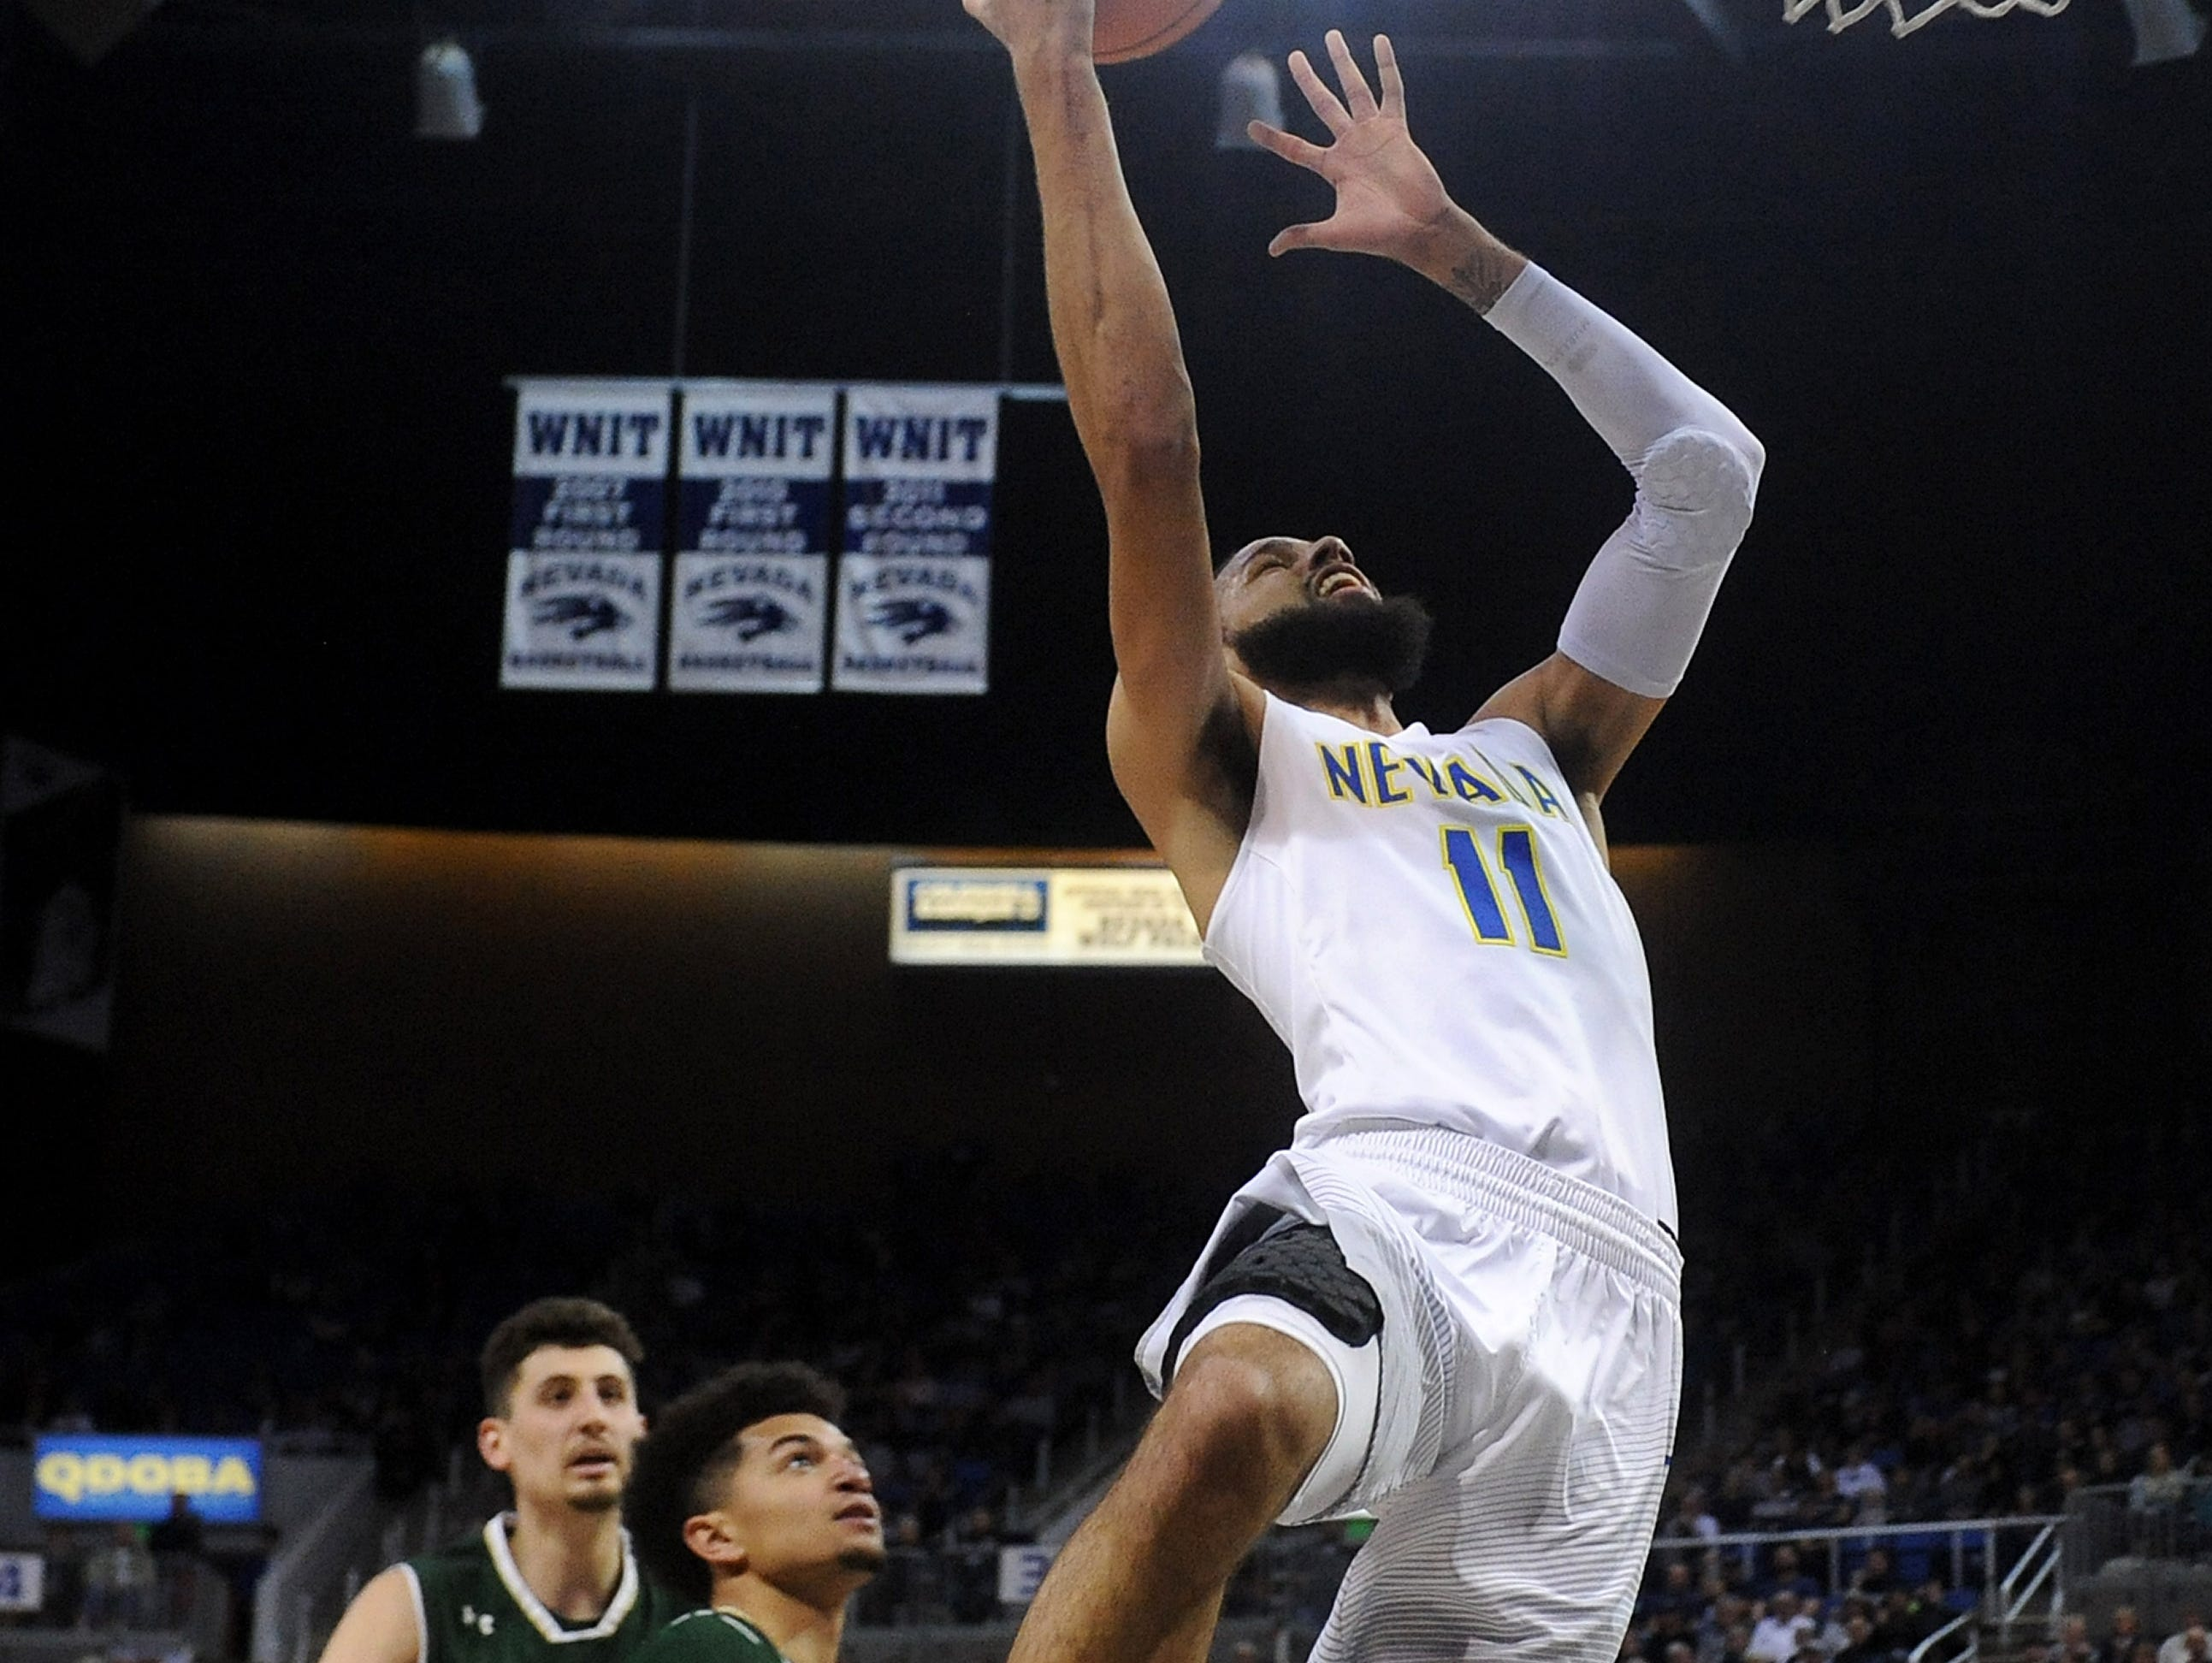 Nevada's Cody Martin (11) shoots while taking on Colorado State during their basketball game at Lawlor Events Center in Reno on Feb. 25, 2018.